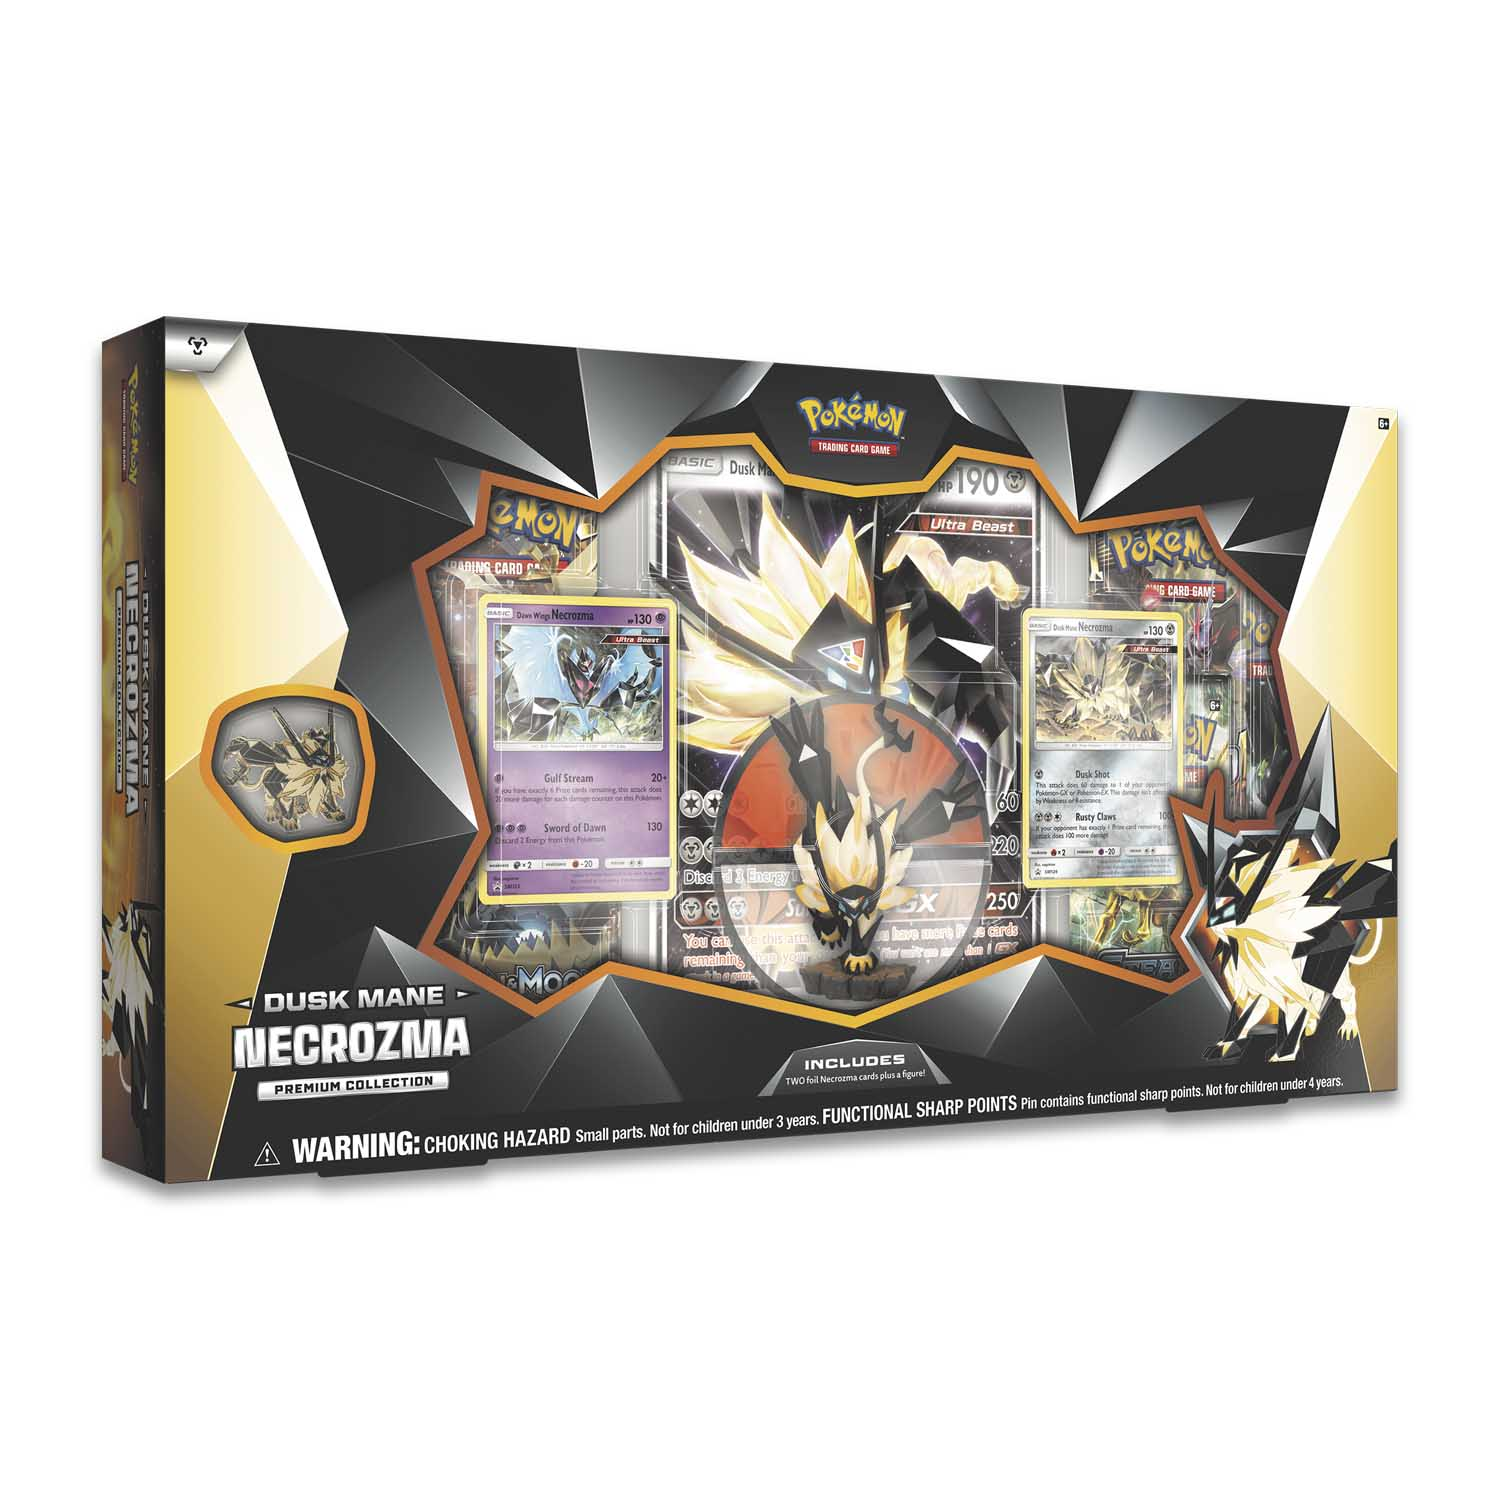 Dusk Mane Necrozma Premium Collection